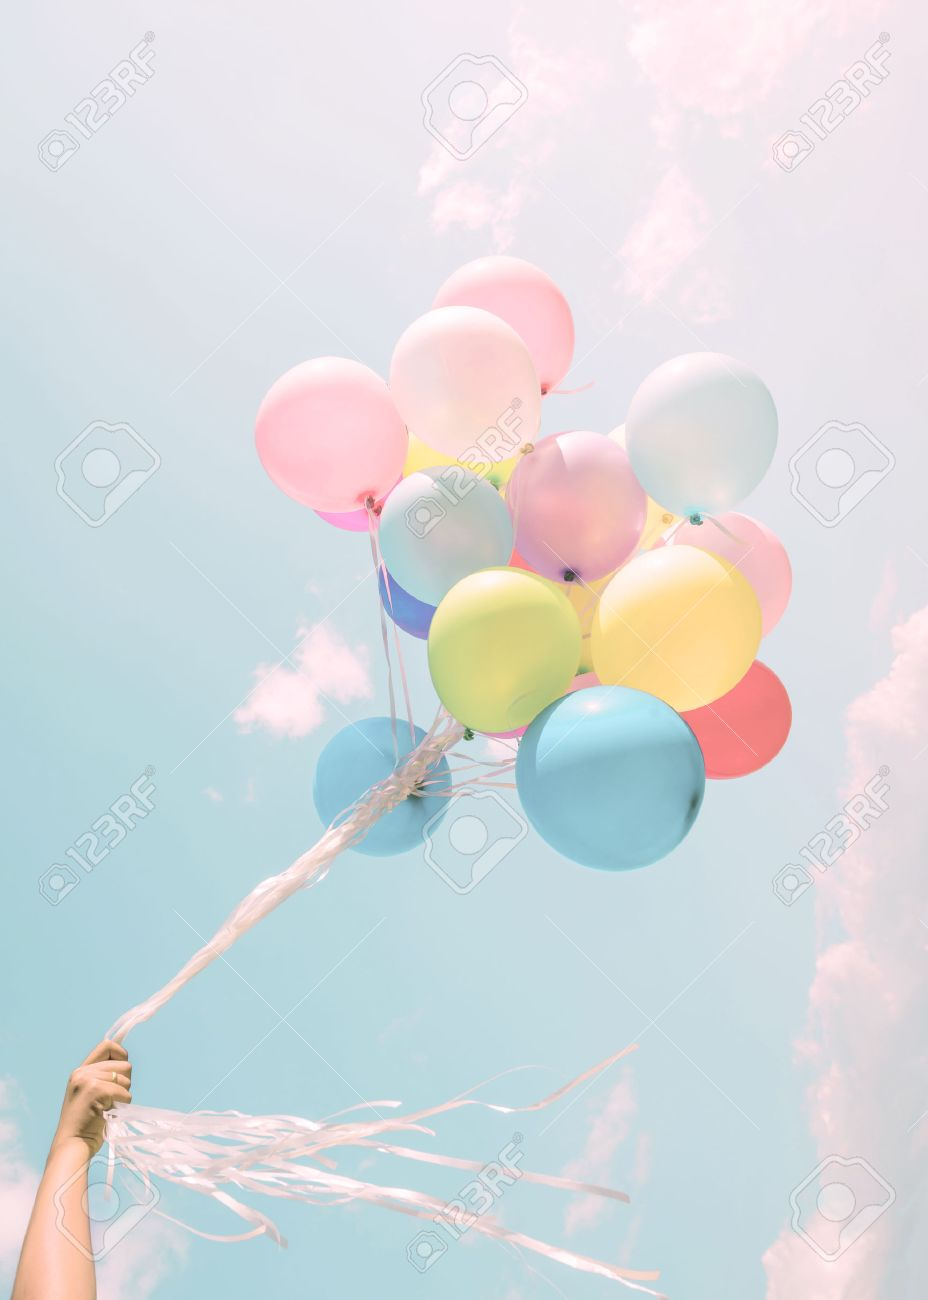 Girl Hand Holding Colorful Balloons Happy Birthday Party Vintage Pastel Filter Effect Stock Photo